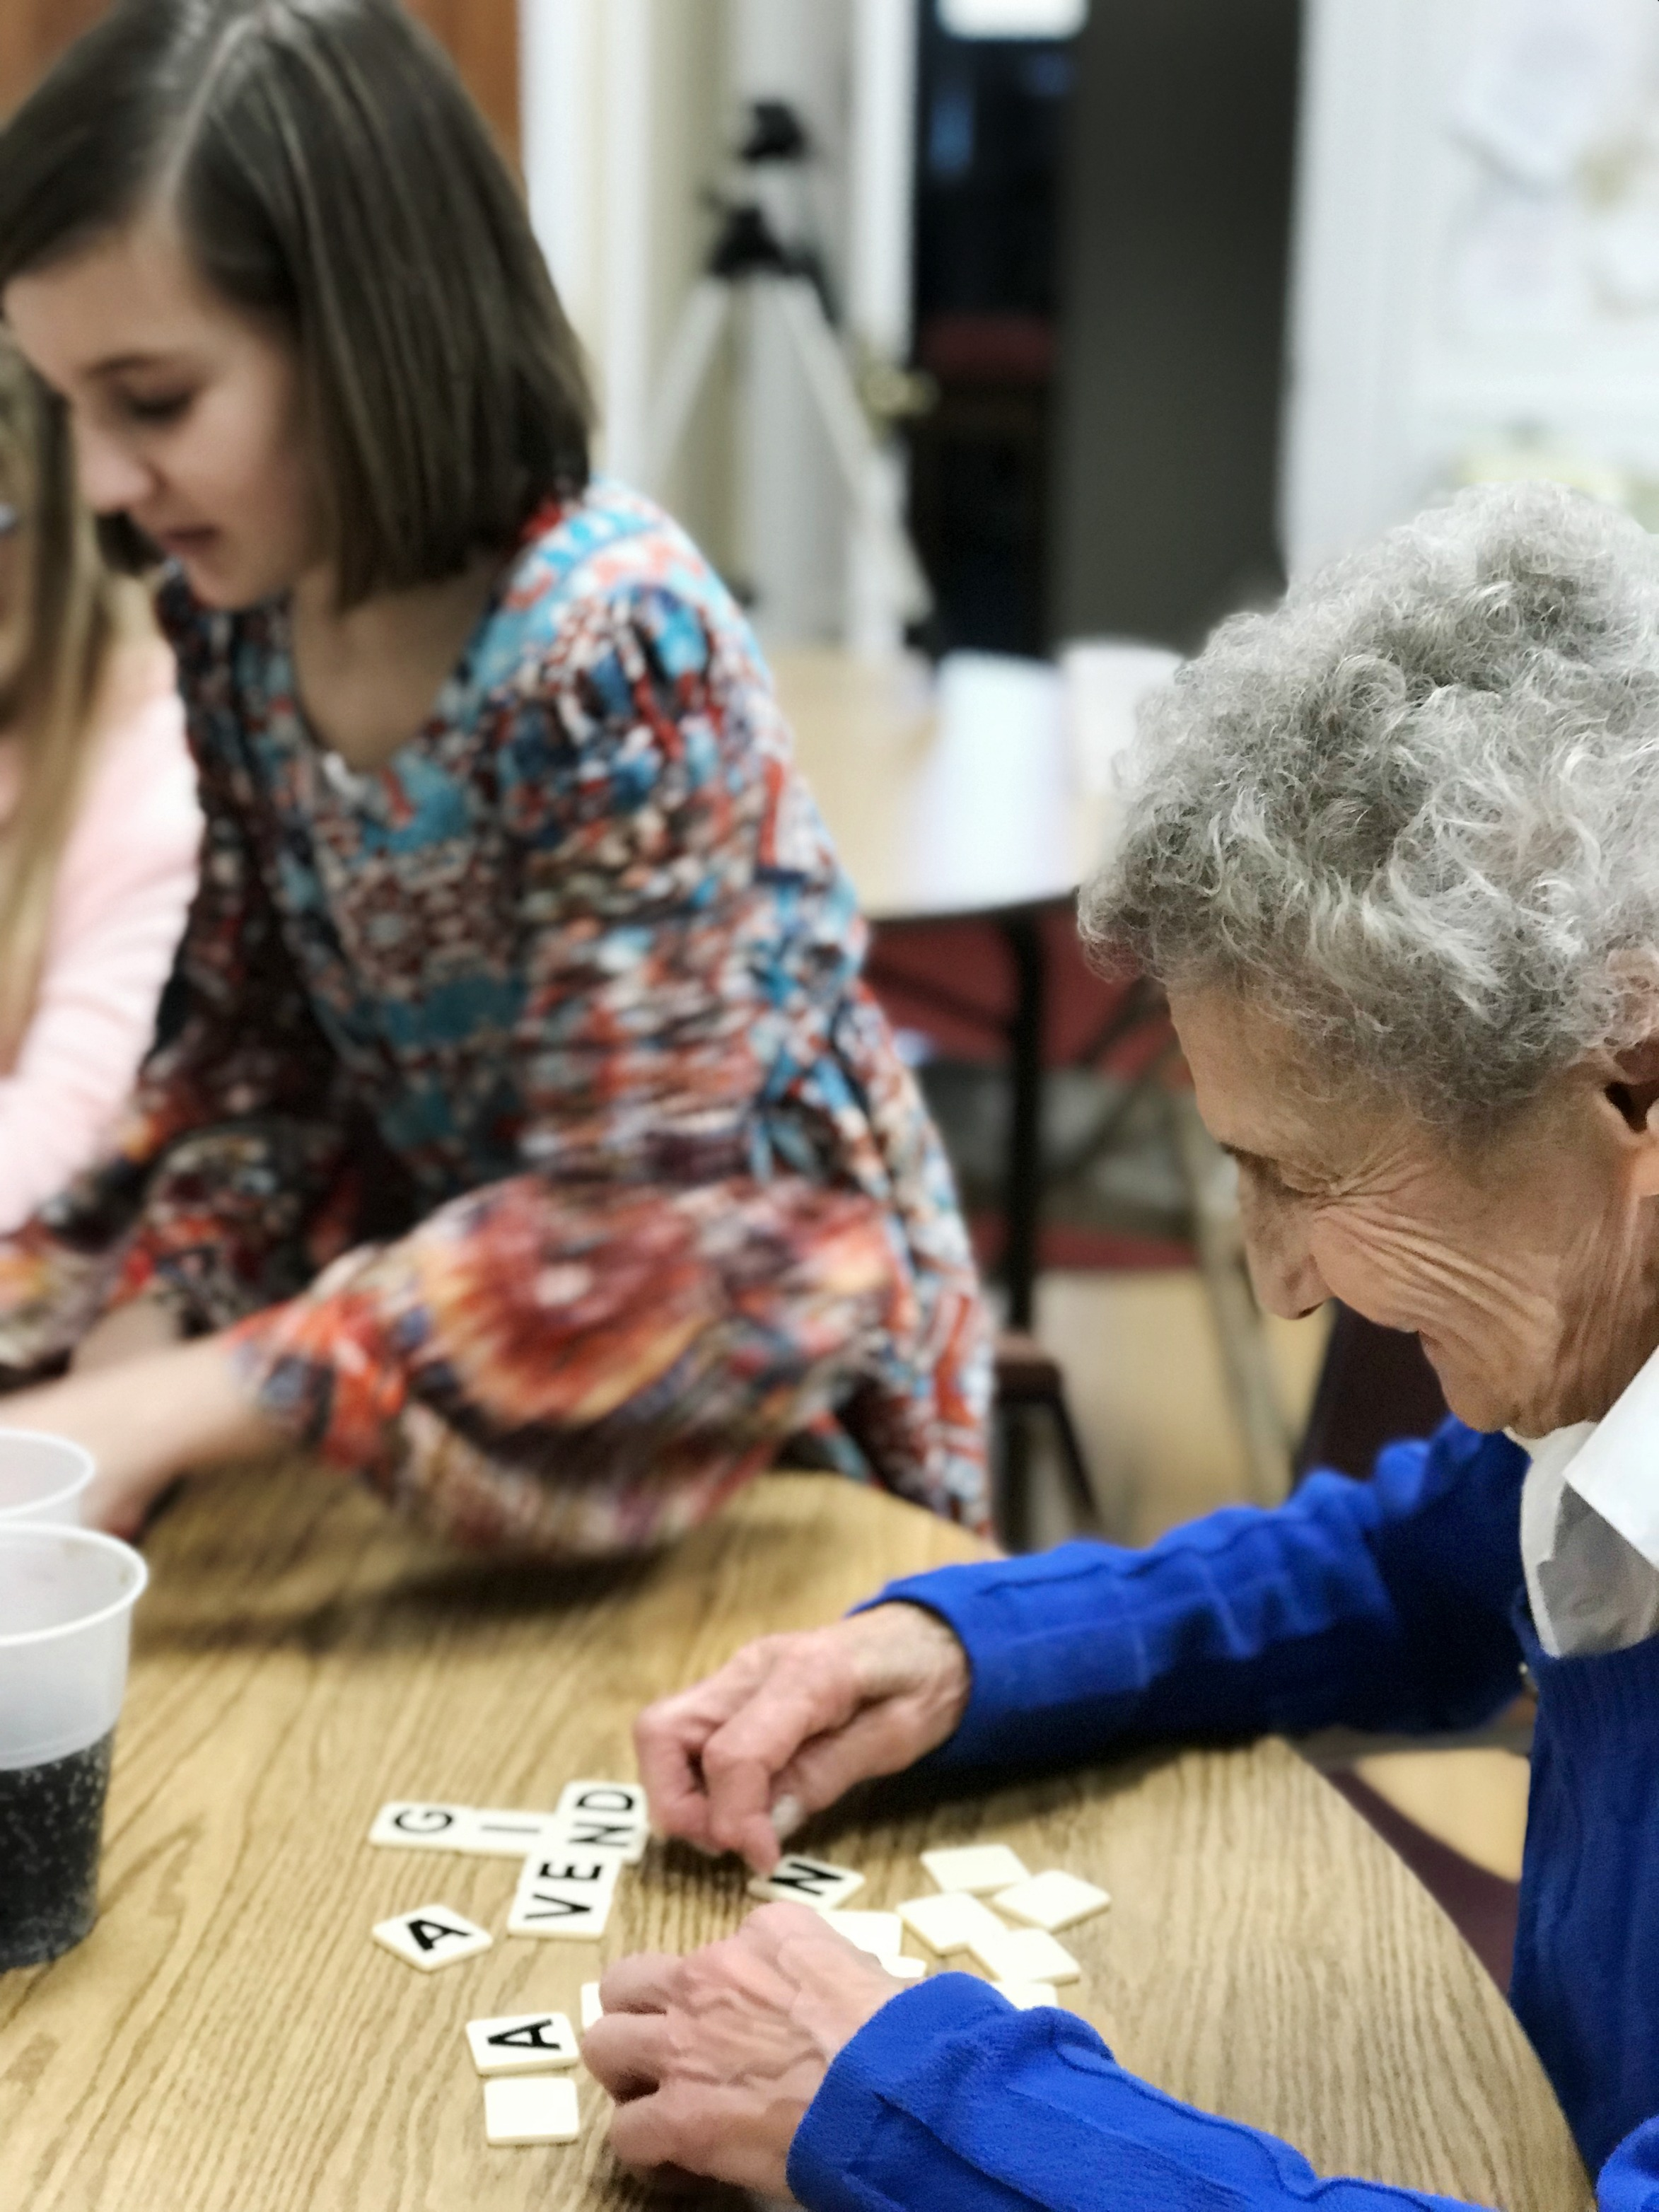 Big Letter Bananagrams Multi-Generational Play